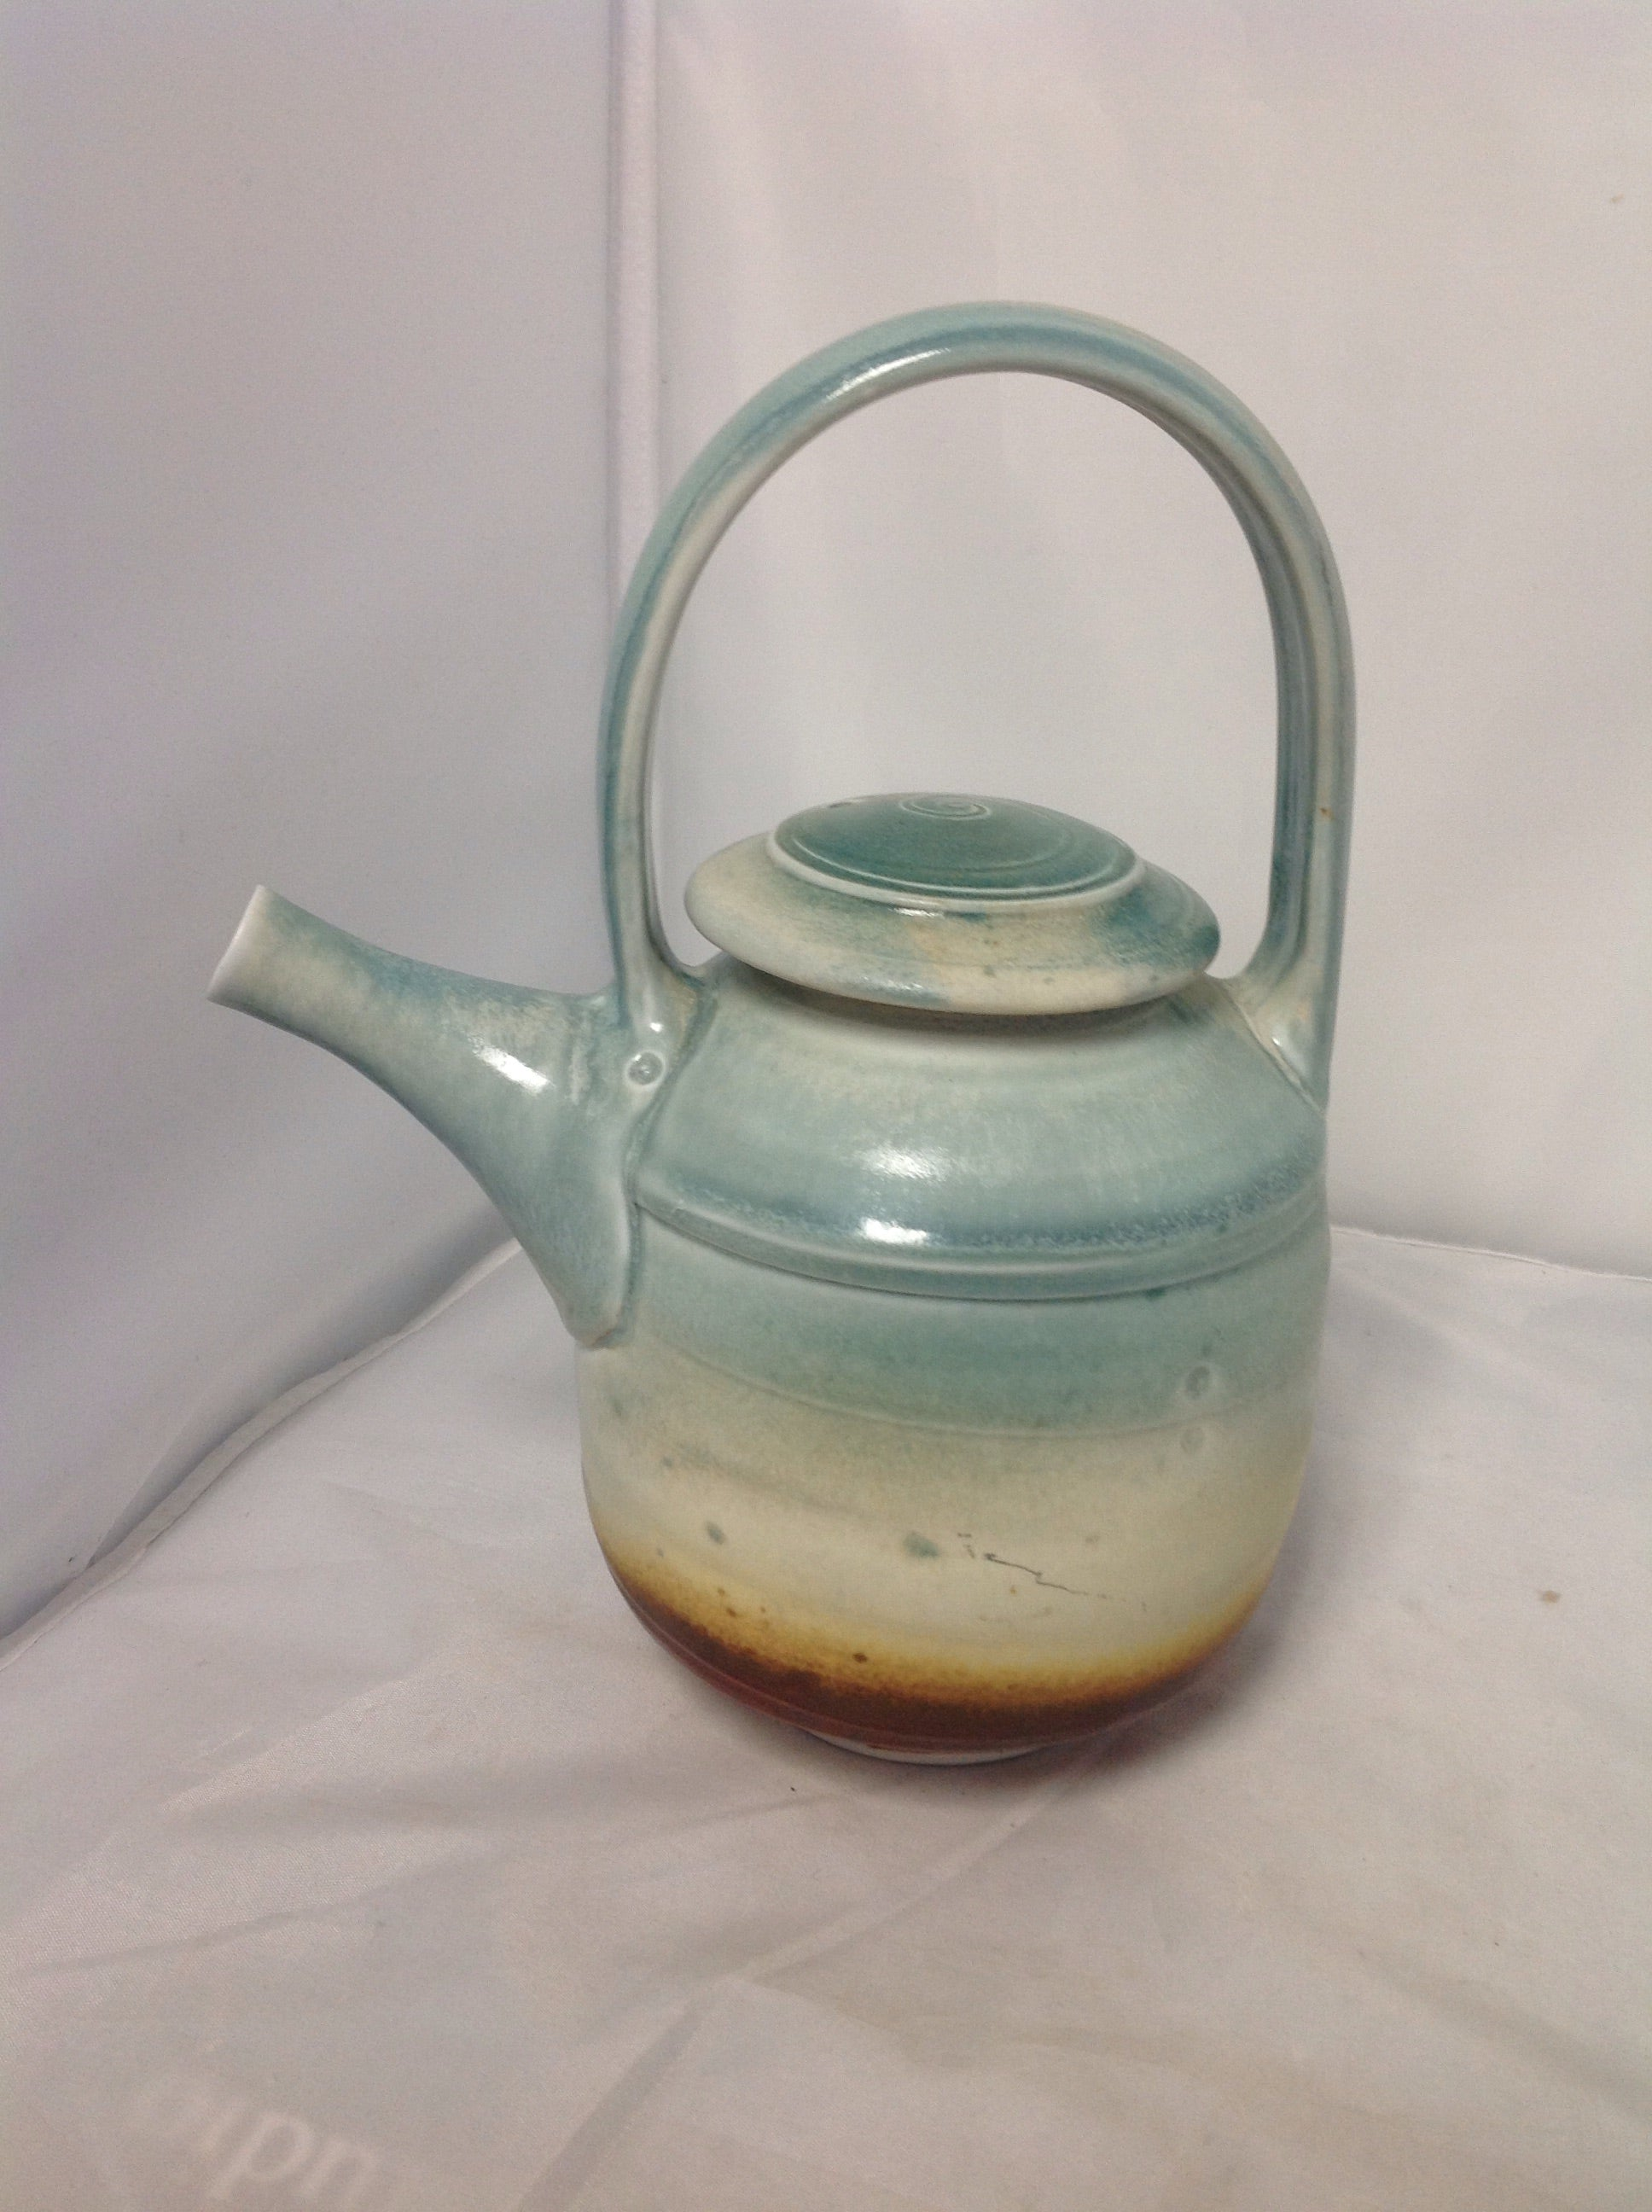 Handmade Sunset teapot pottery by Willow Connery